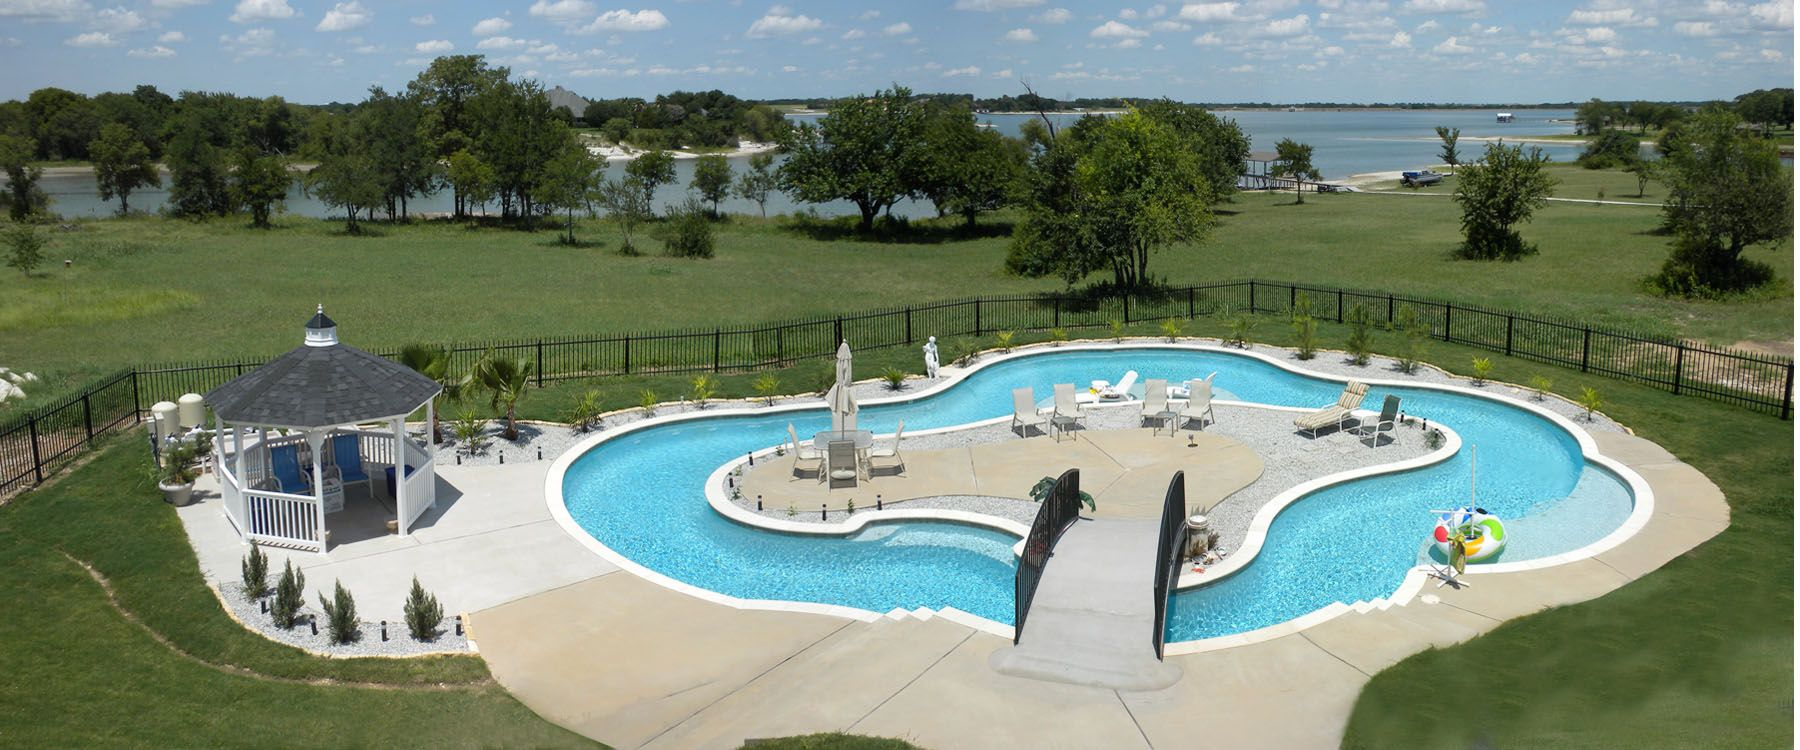 Lazy River Swimming Pool Designs pleasing lazy river swimming pool designs unique swimming pool decoration arrangement Lazy River Pools In Backyard